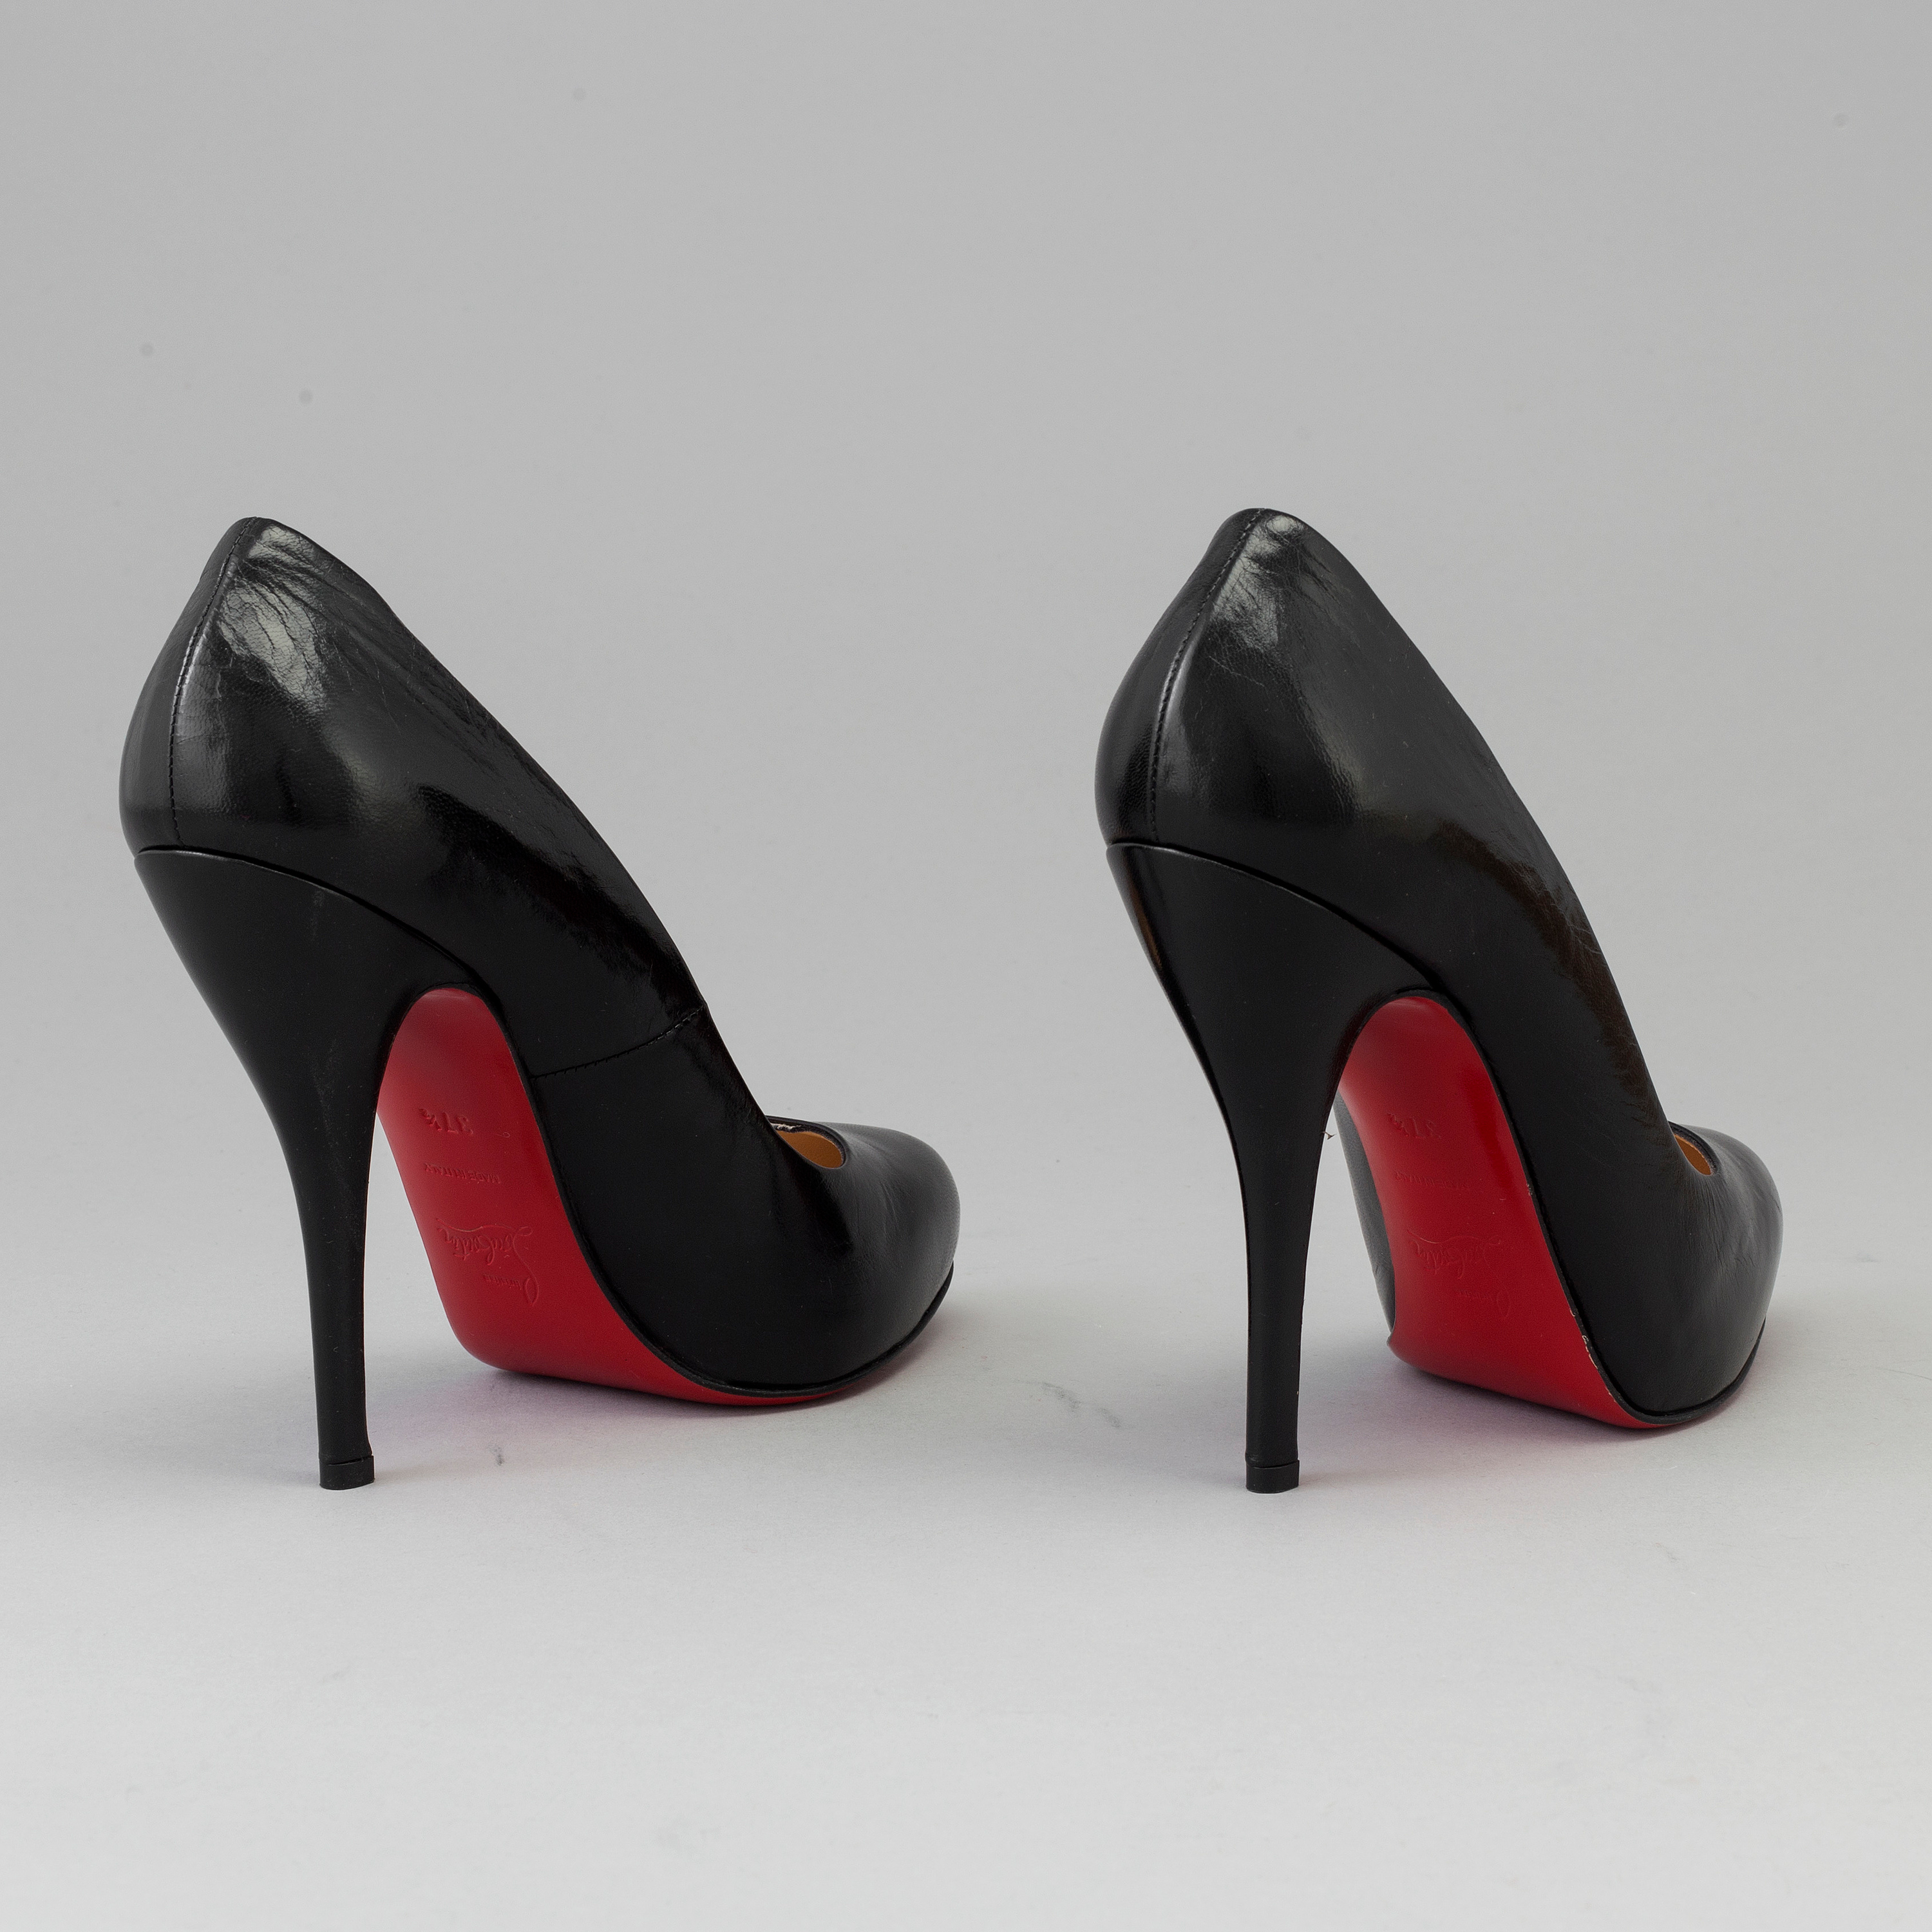 cheap for discount 721f3 7fe1f HIGH HEELS, Christian Louboutin, size 37,5. - Bukowskis